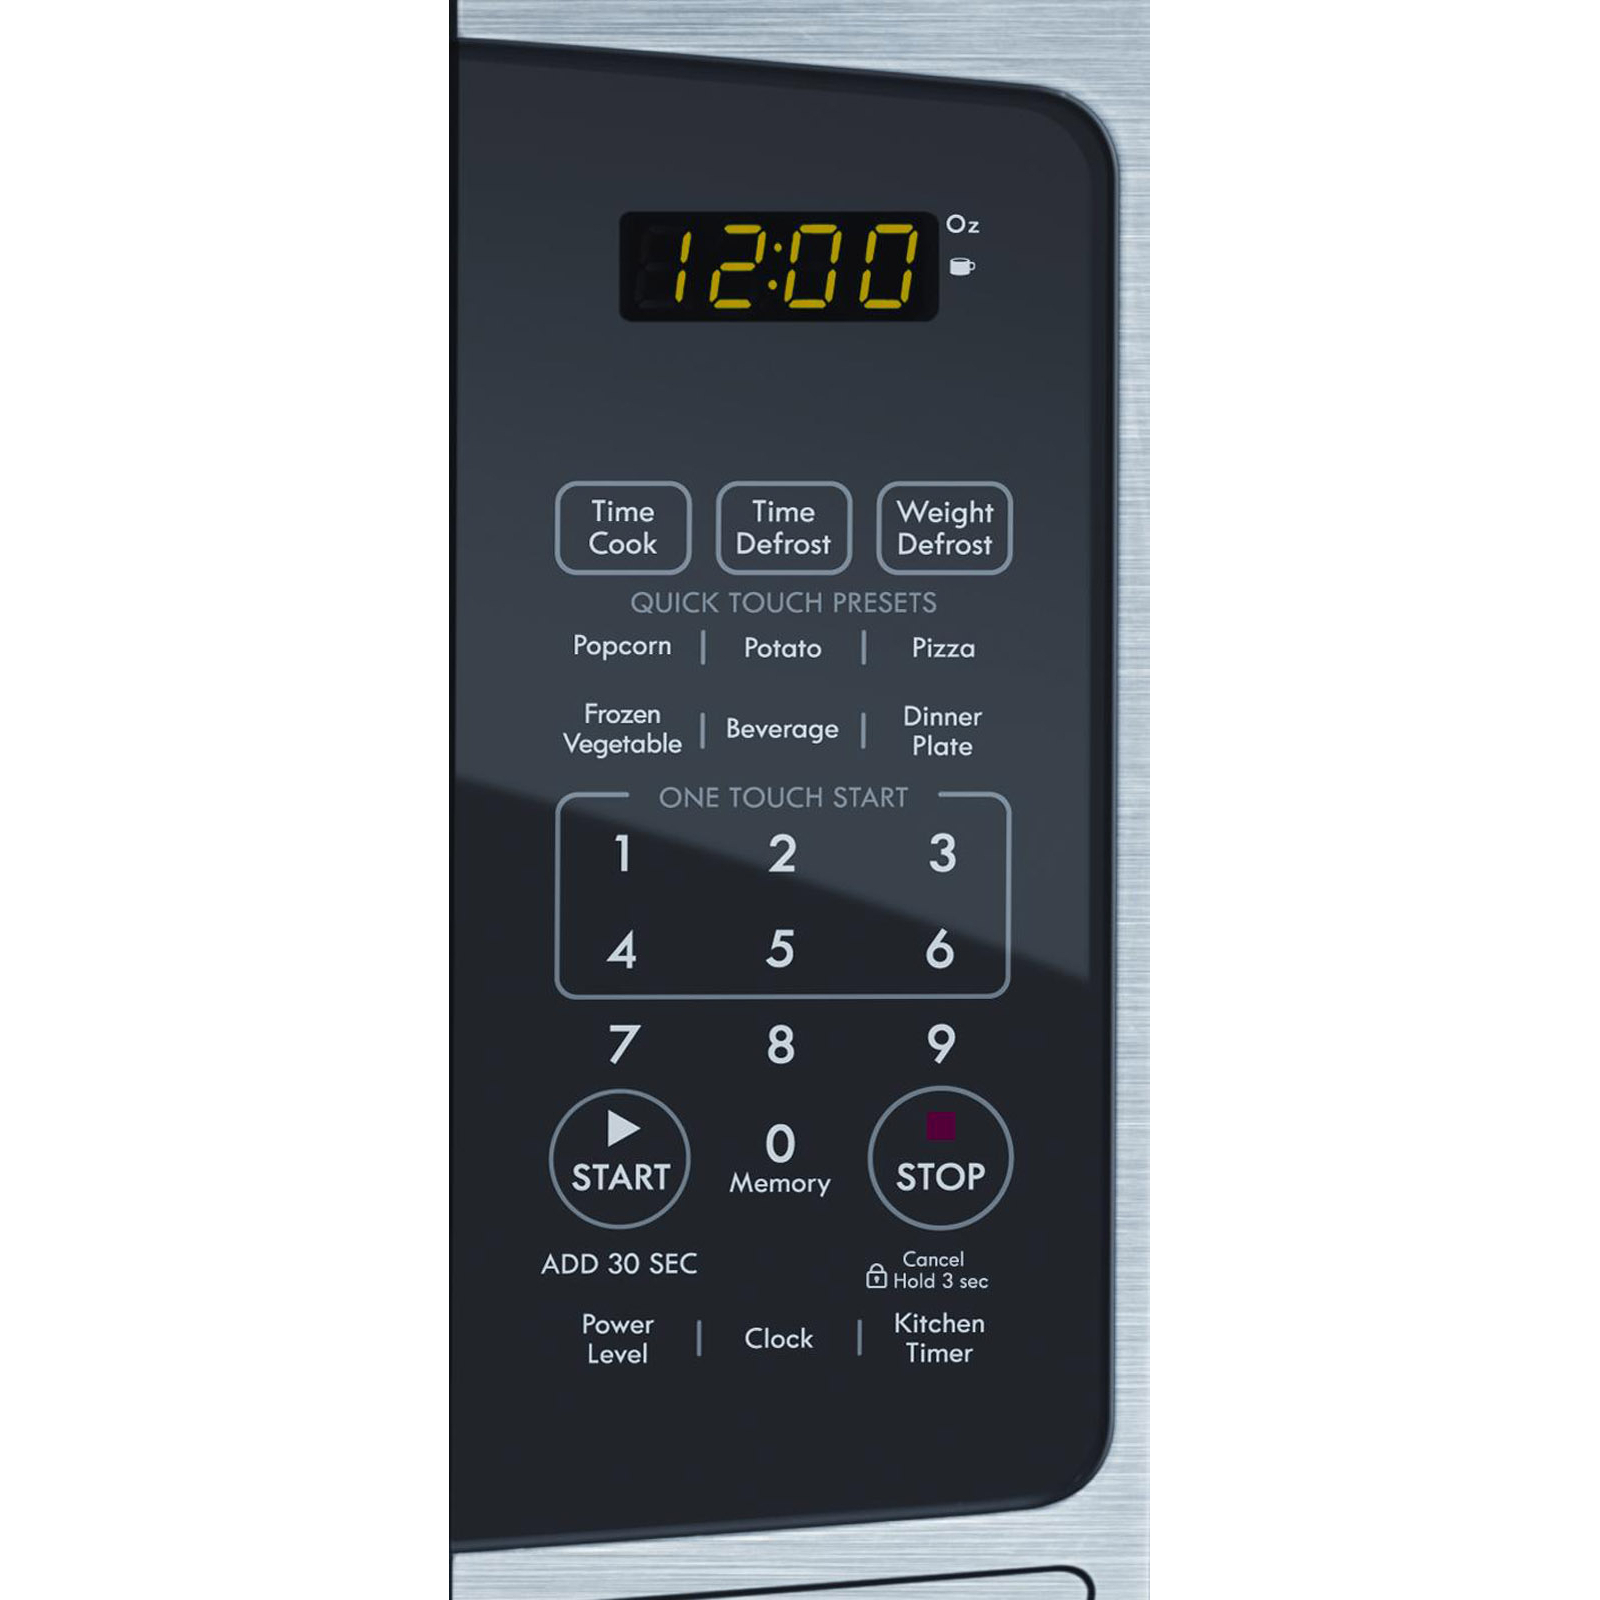 Kenmore 73093 0.9 Cu. Ft. Stainless Countertop Microwave